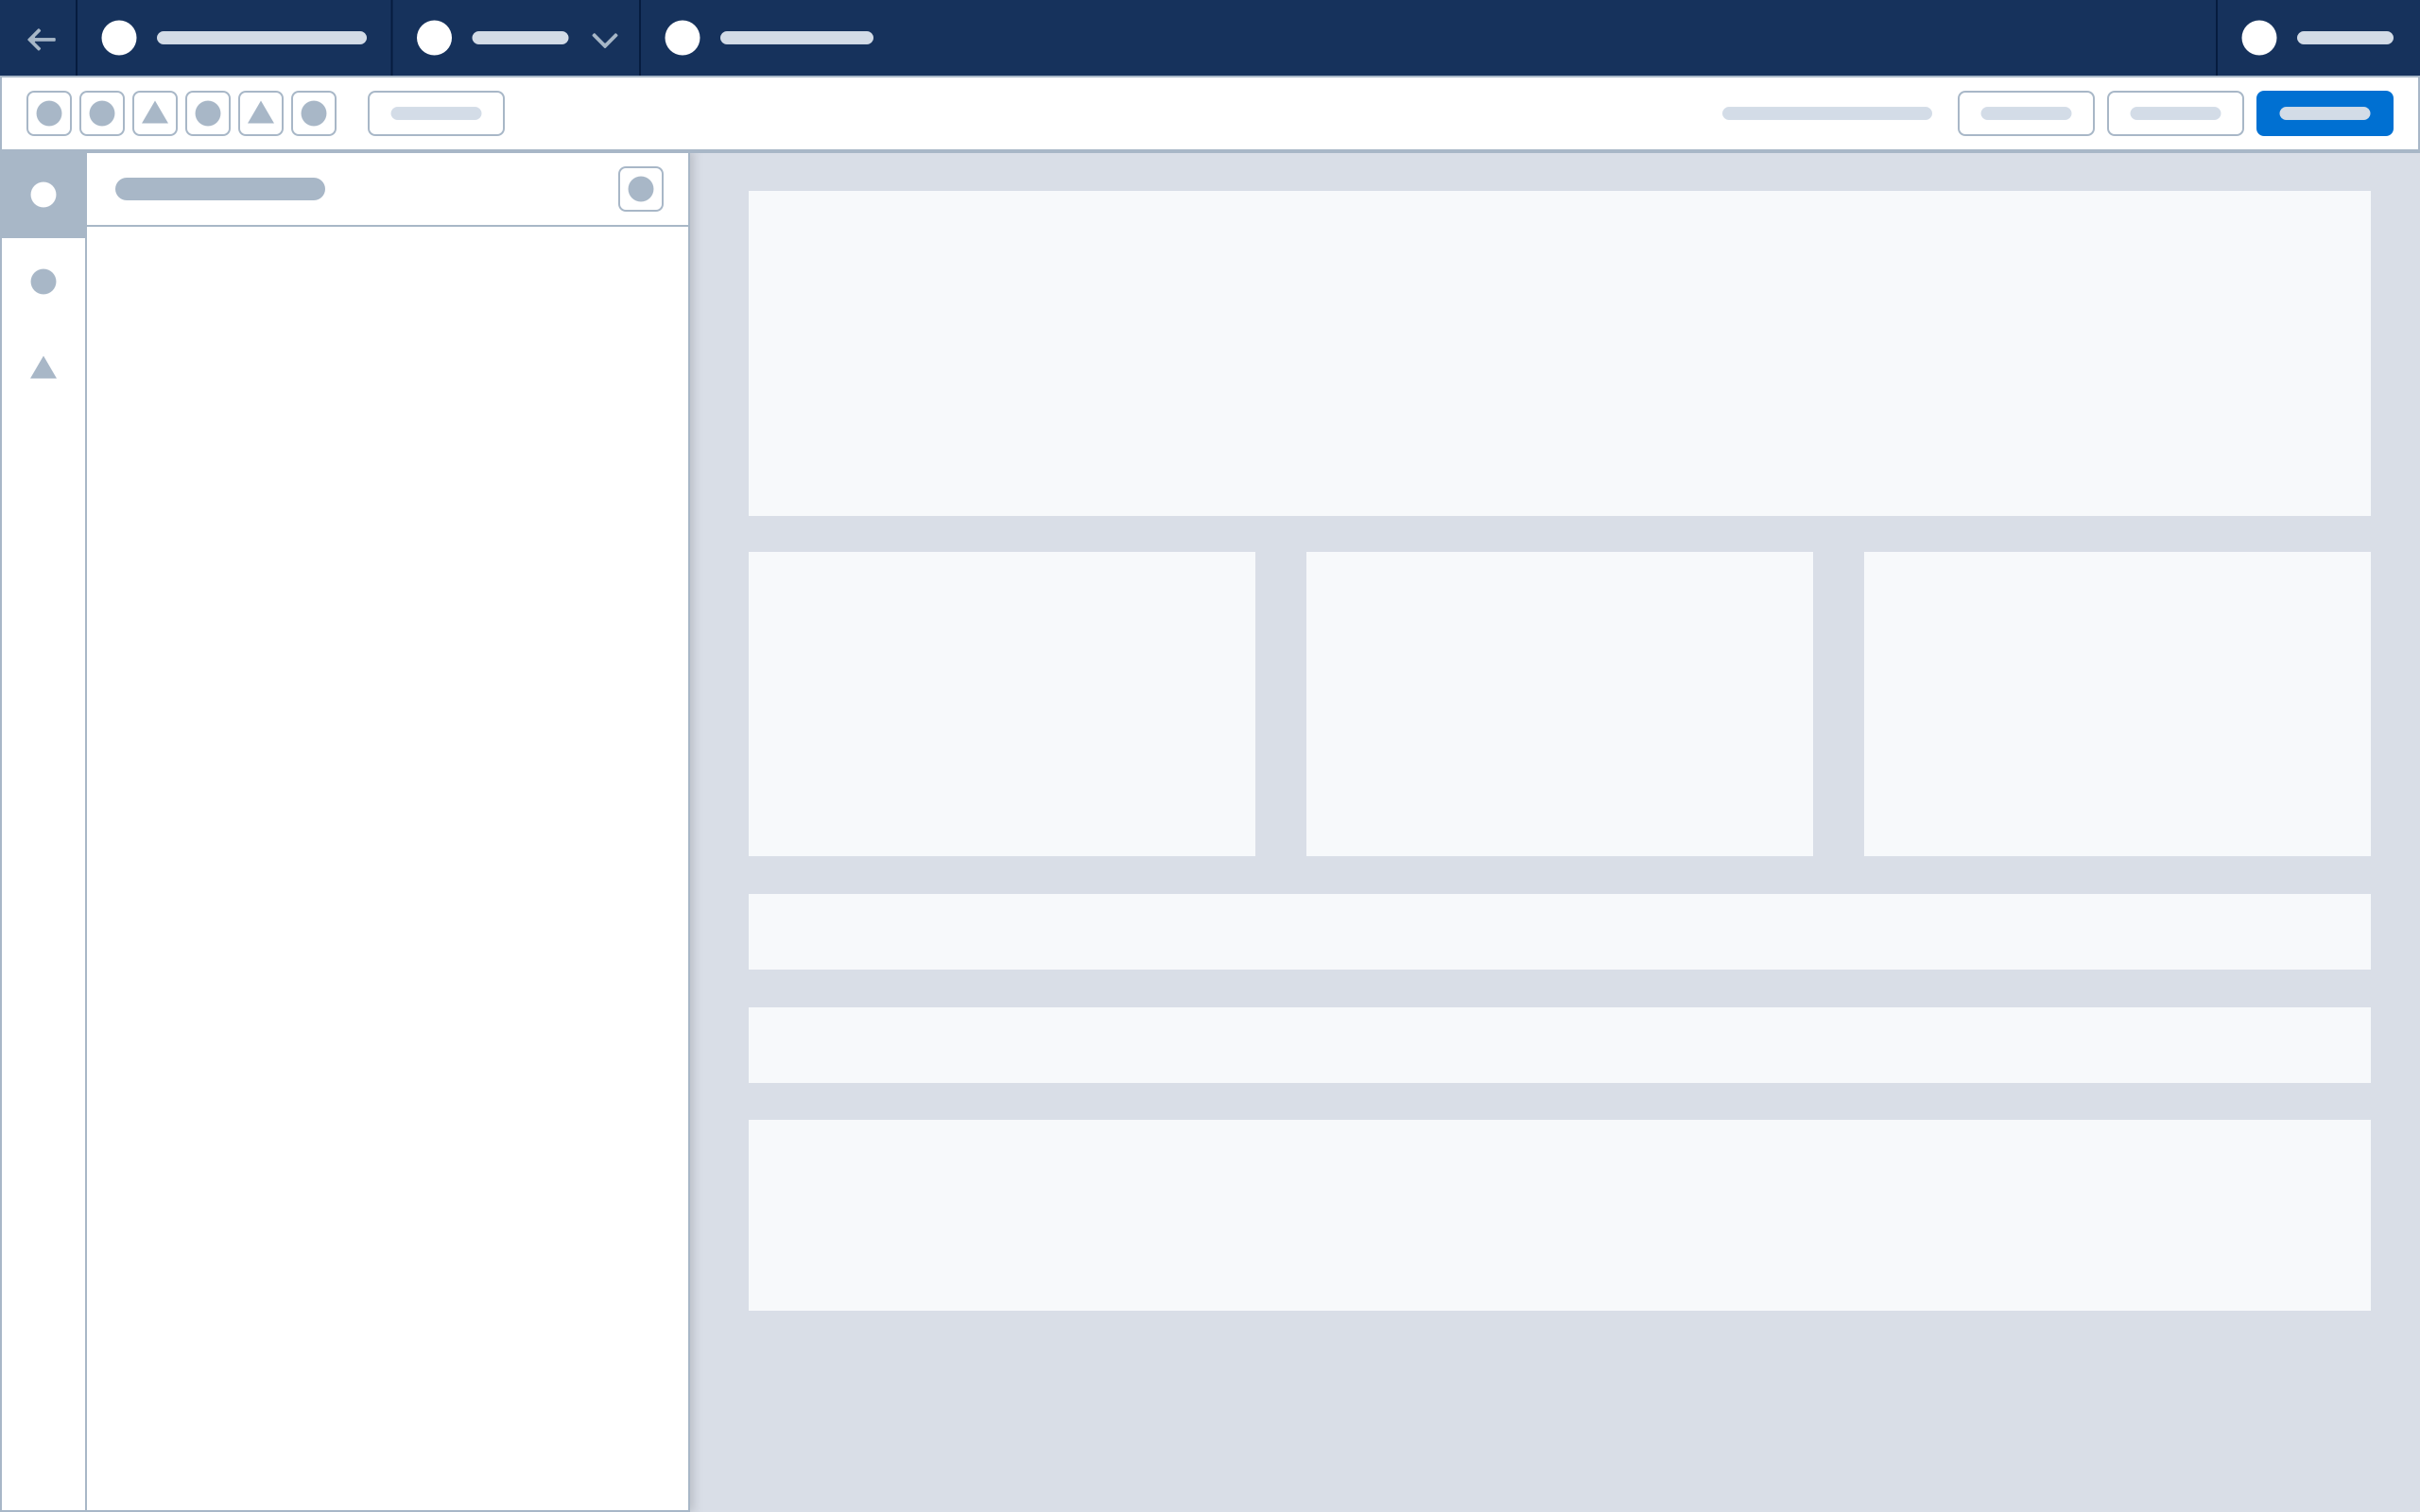 Wireframe showing the vertical tab bar with open panel.